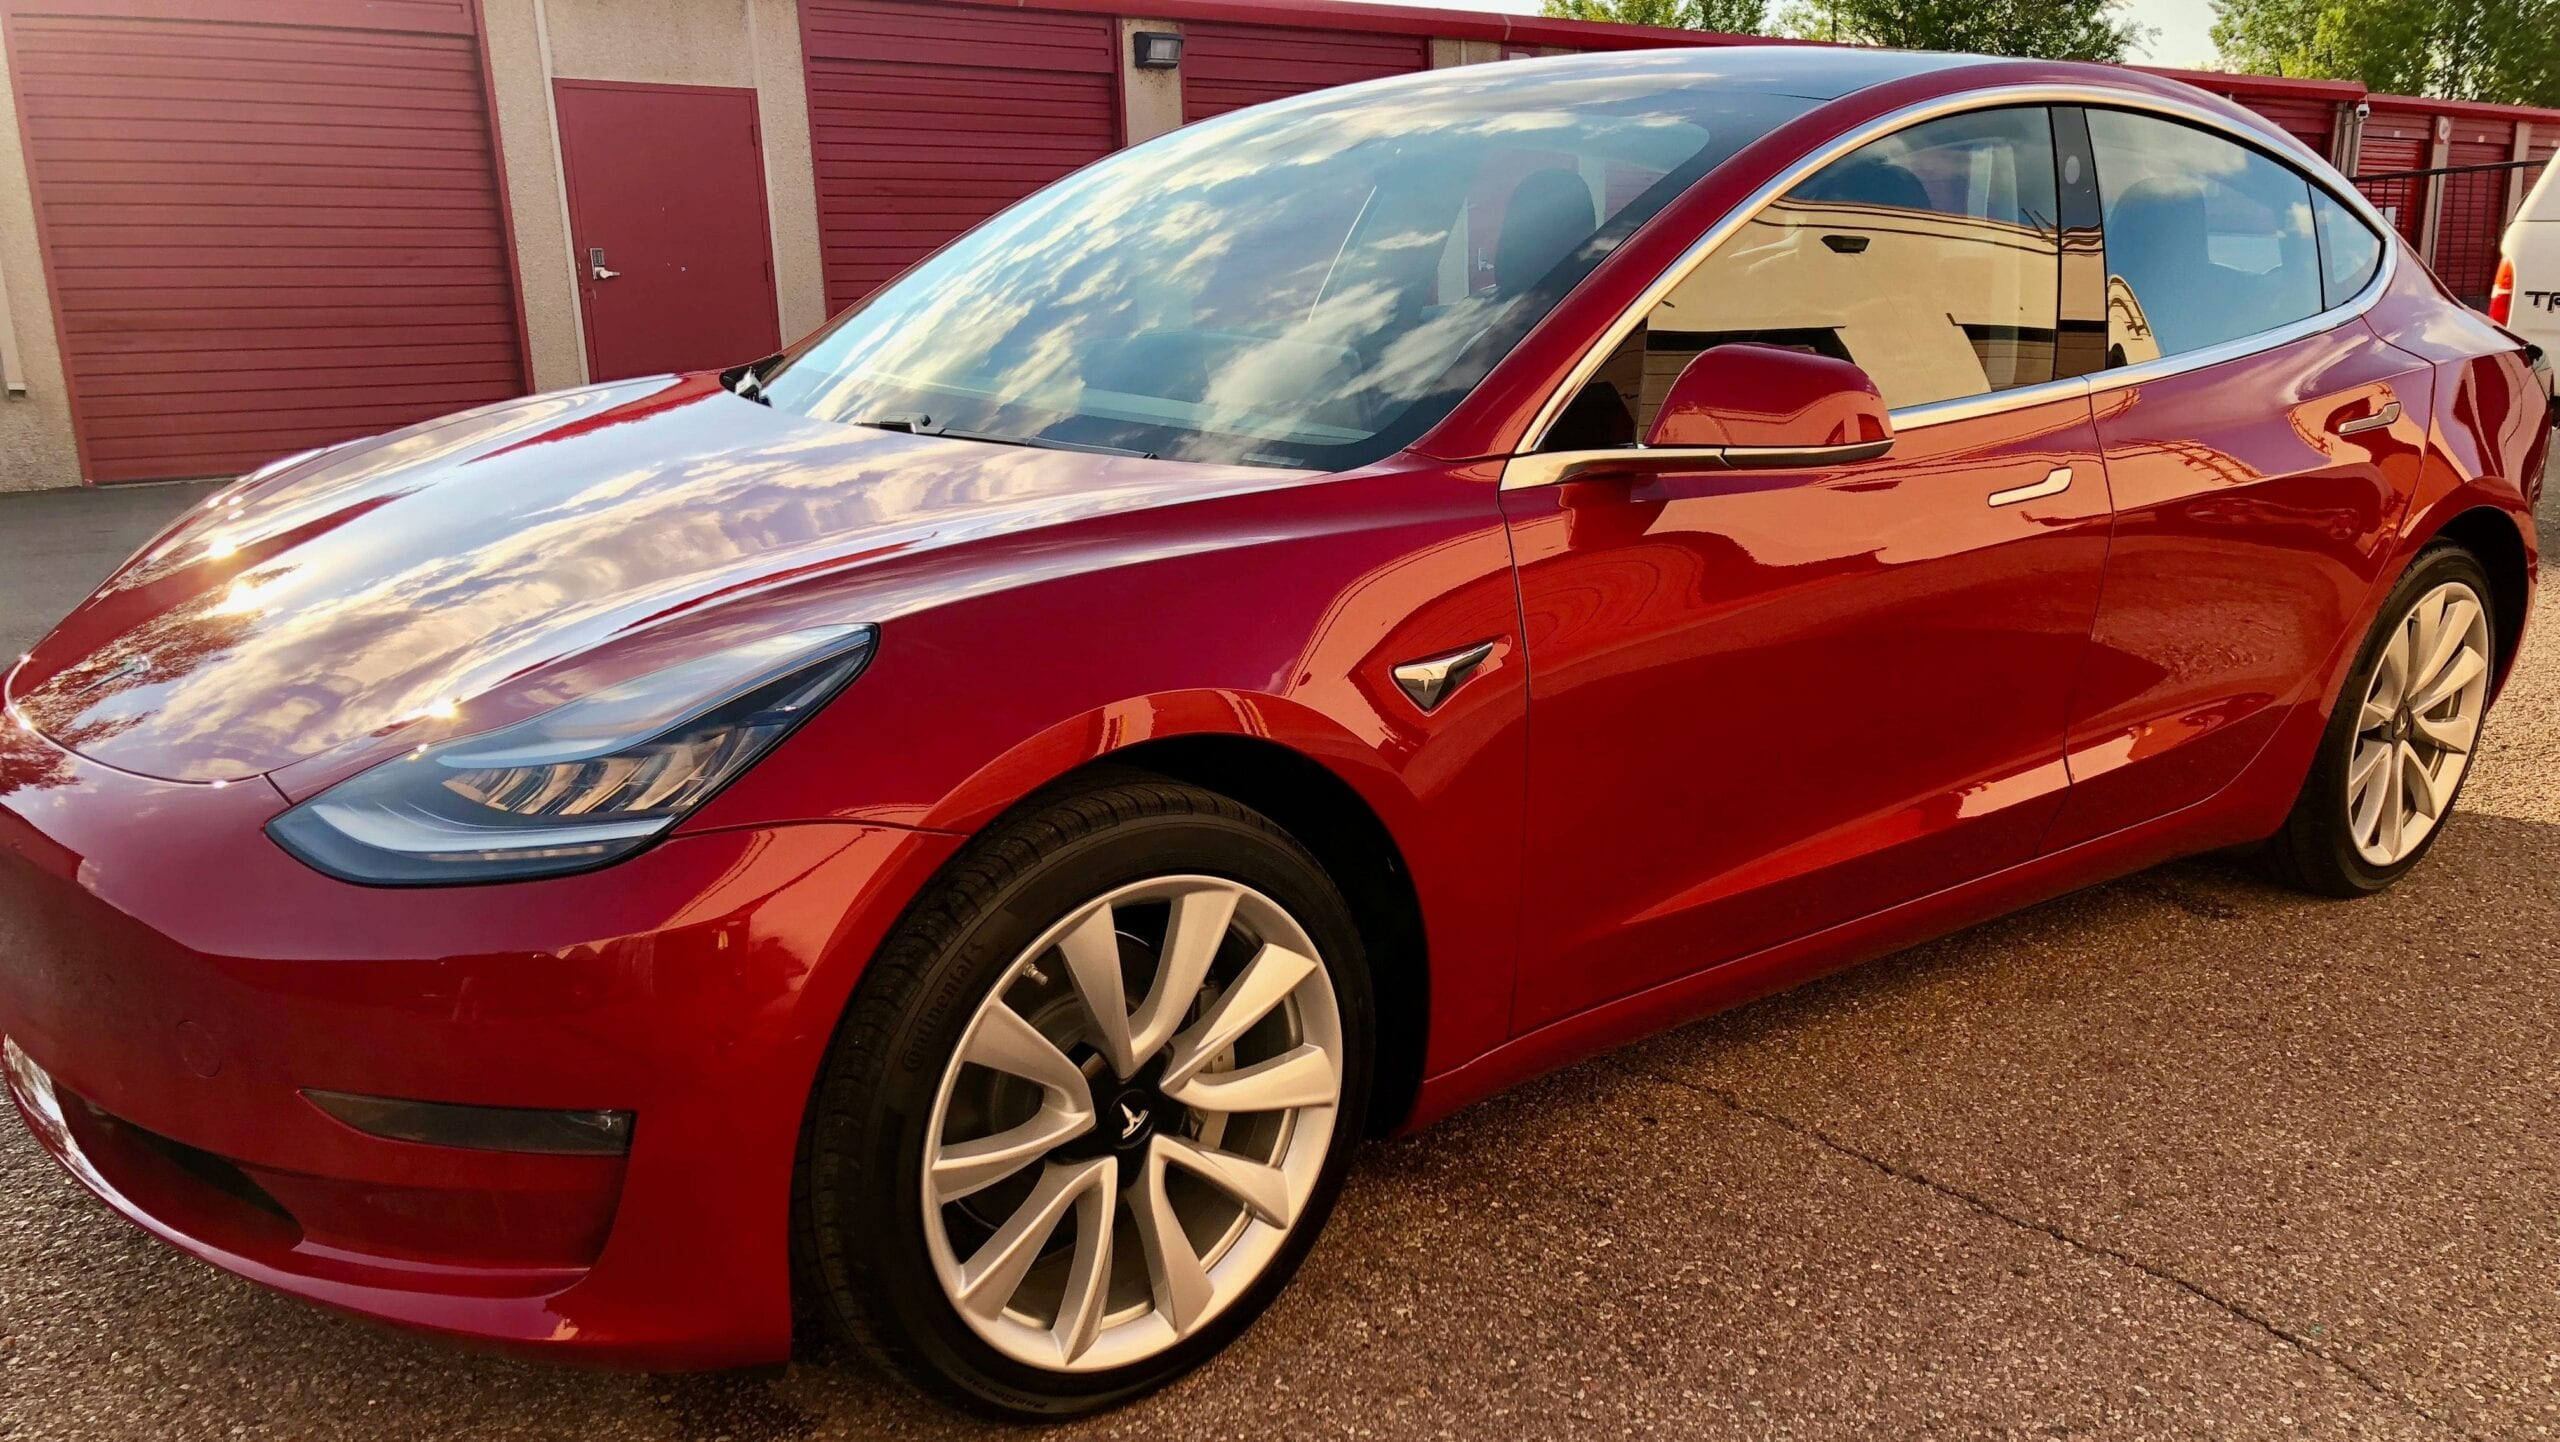 Professional Detailing and Ceramic Coating Red Car at Pro Auto Spa in Colorado Springs